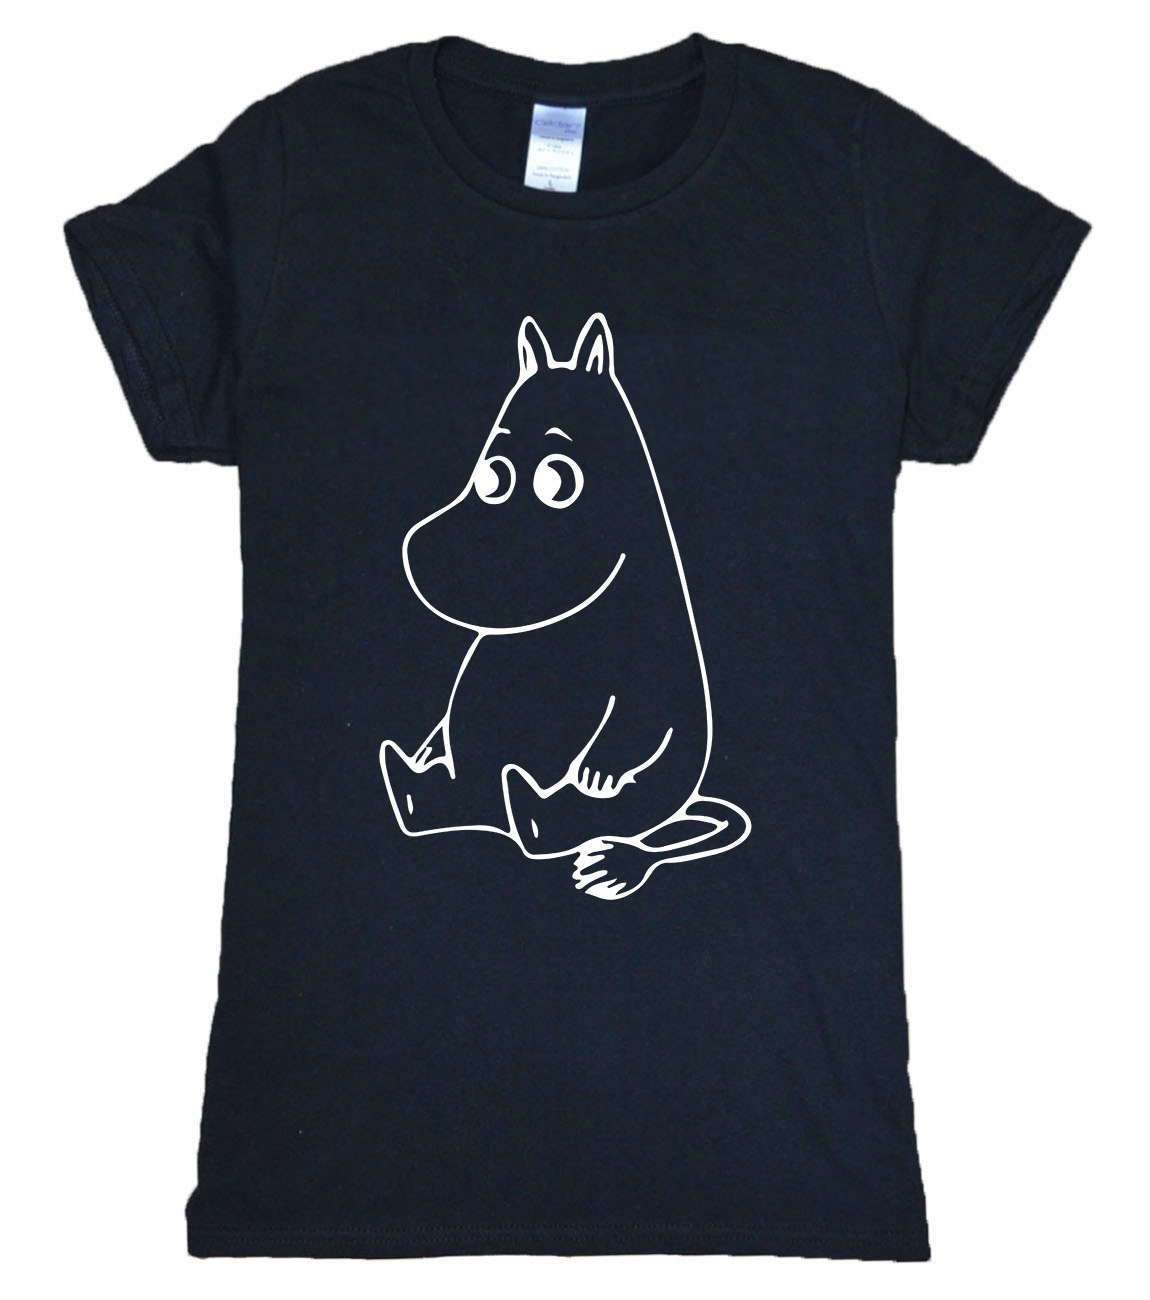 2016 summer moomin cartoon print t shirt women brand tops harajuku tee shirt funny top pp grunge. Black Bedroom Furniture Sets. Home Design Ideas